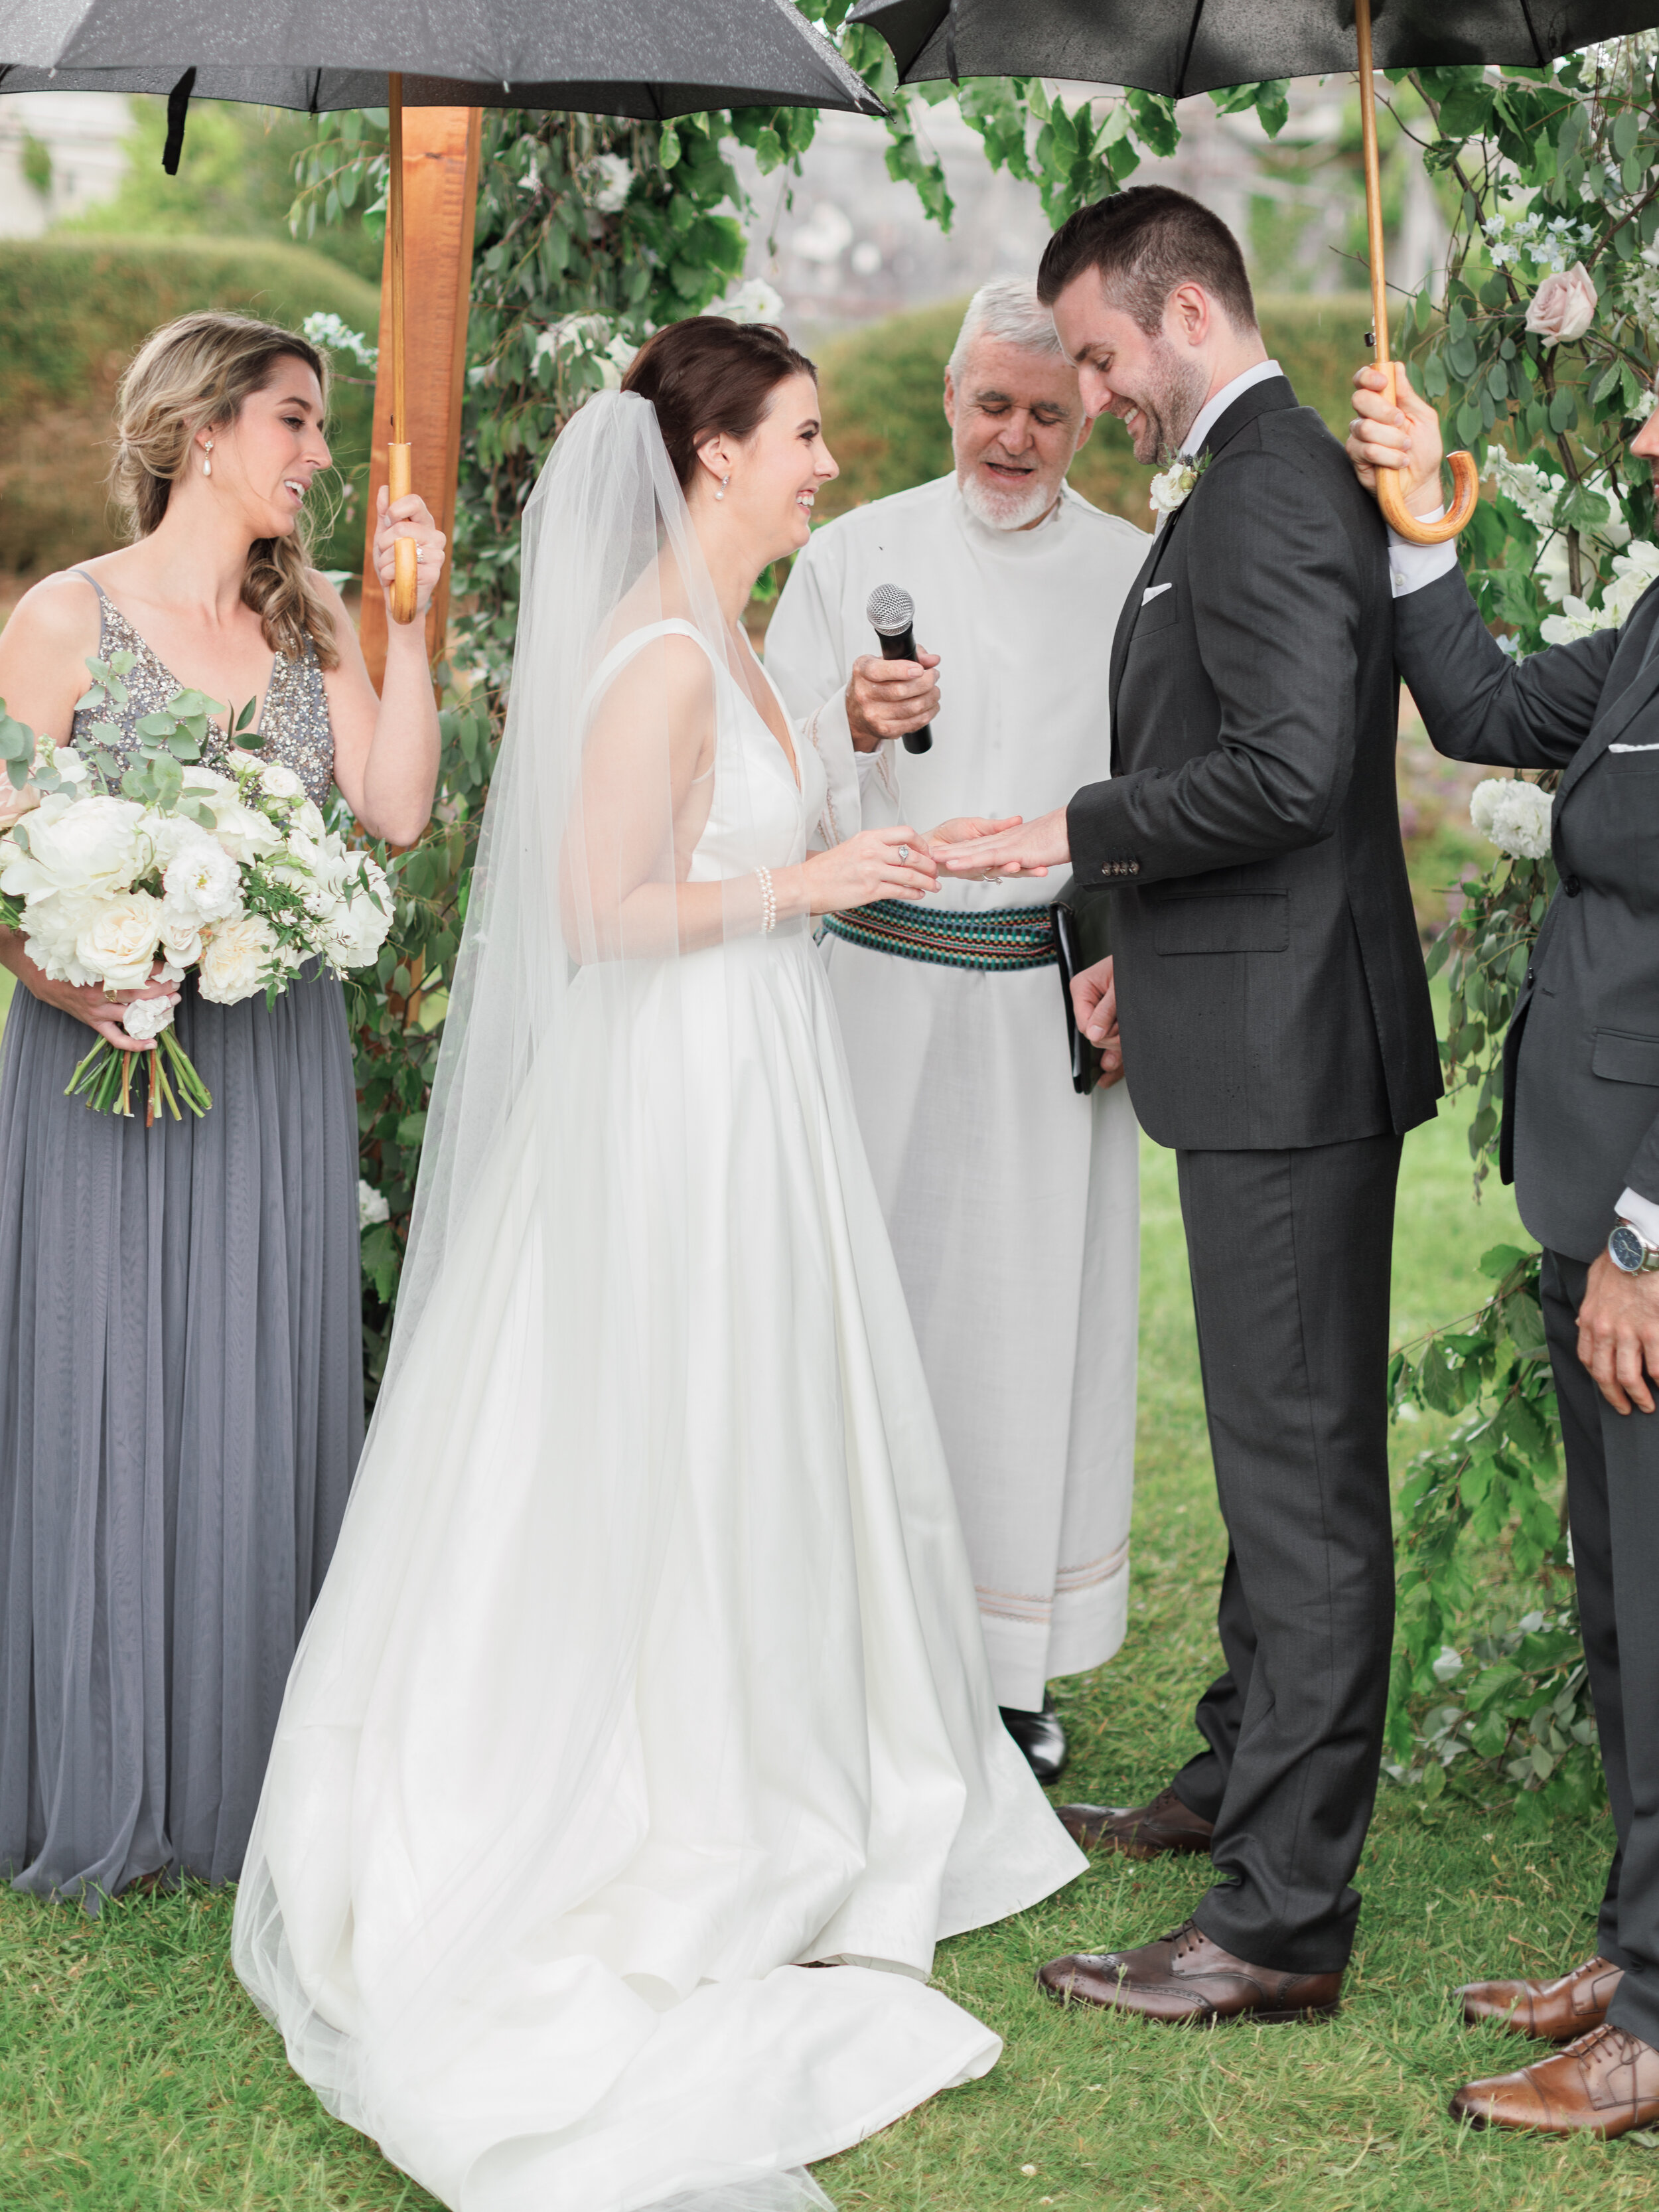 Bella-Botanica-Flowers-Molly-Carr-Photography-Ceremony-Vows_Floral- Arbor-Arch132.JPG